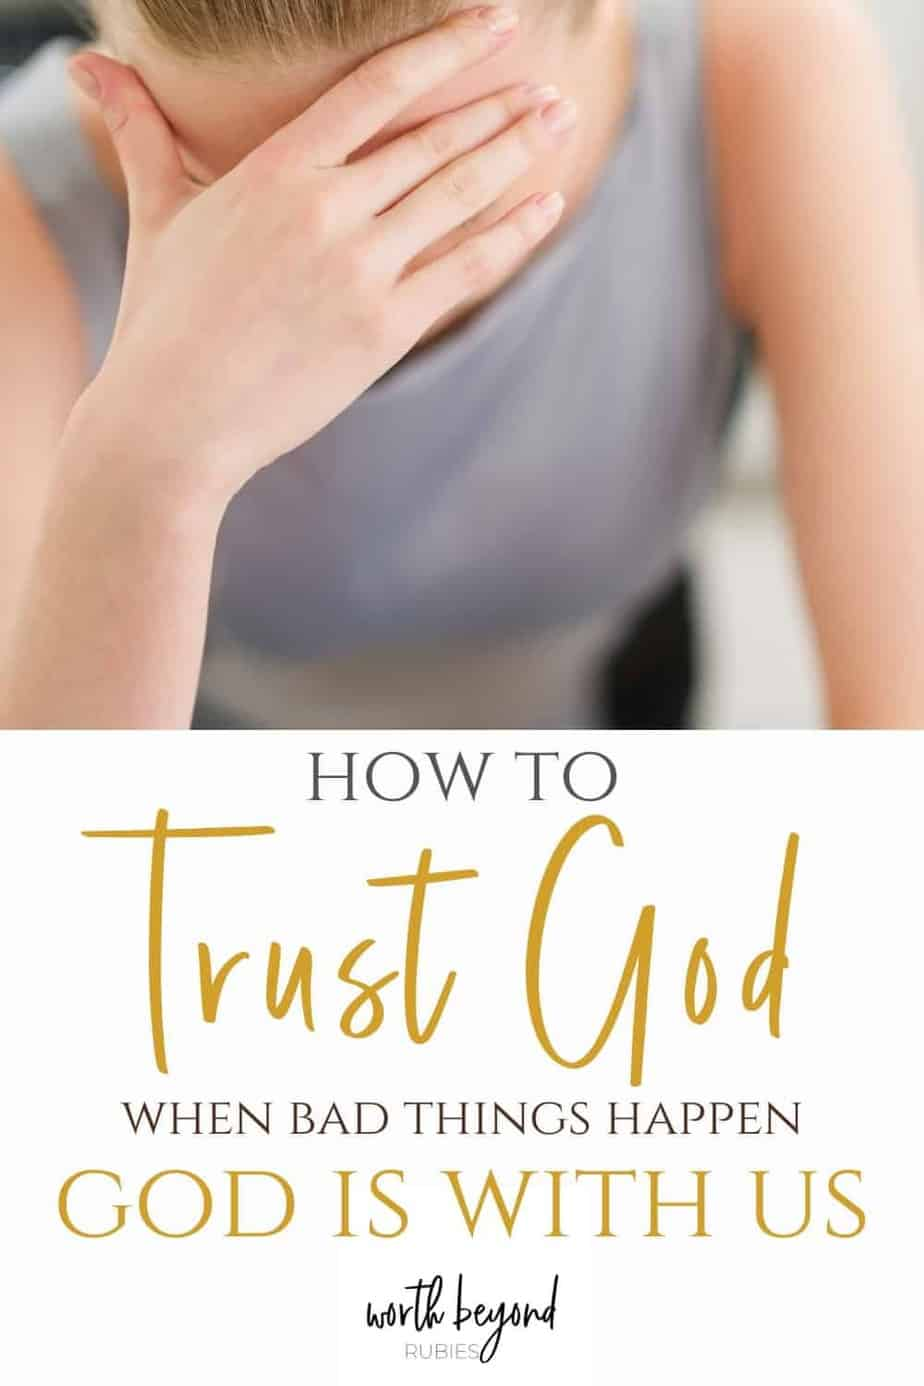 Stressed young housewife with her hand over her face and text that says How to Trust God When Bad Things Happen - God is With Us